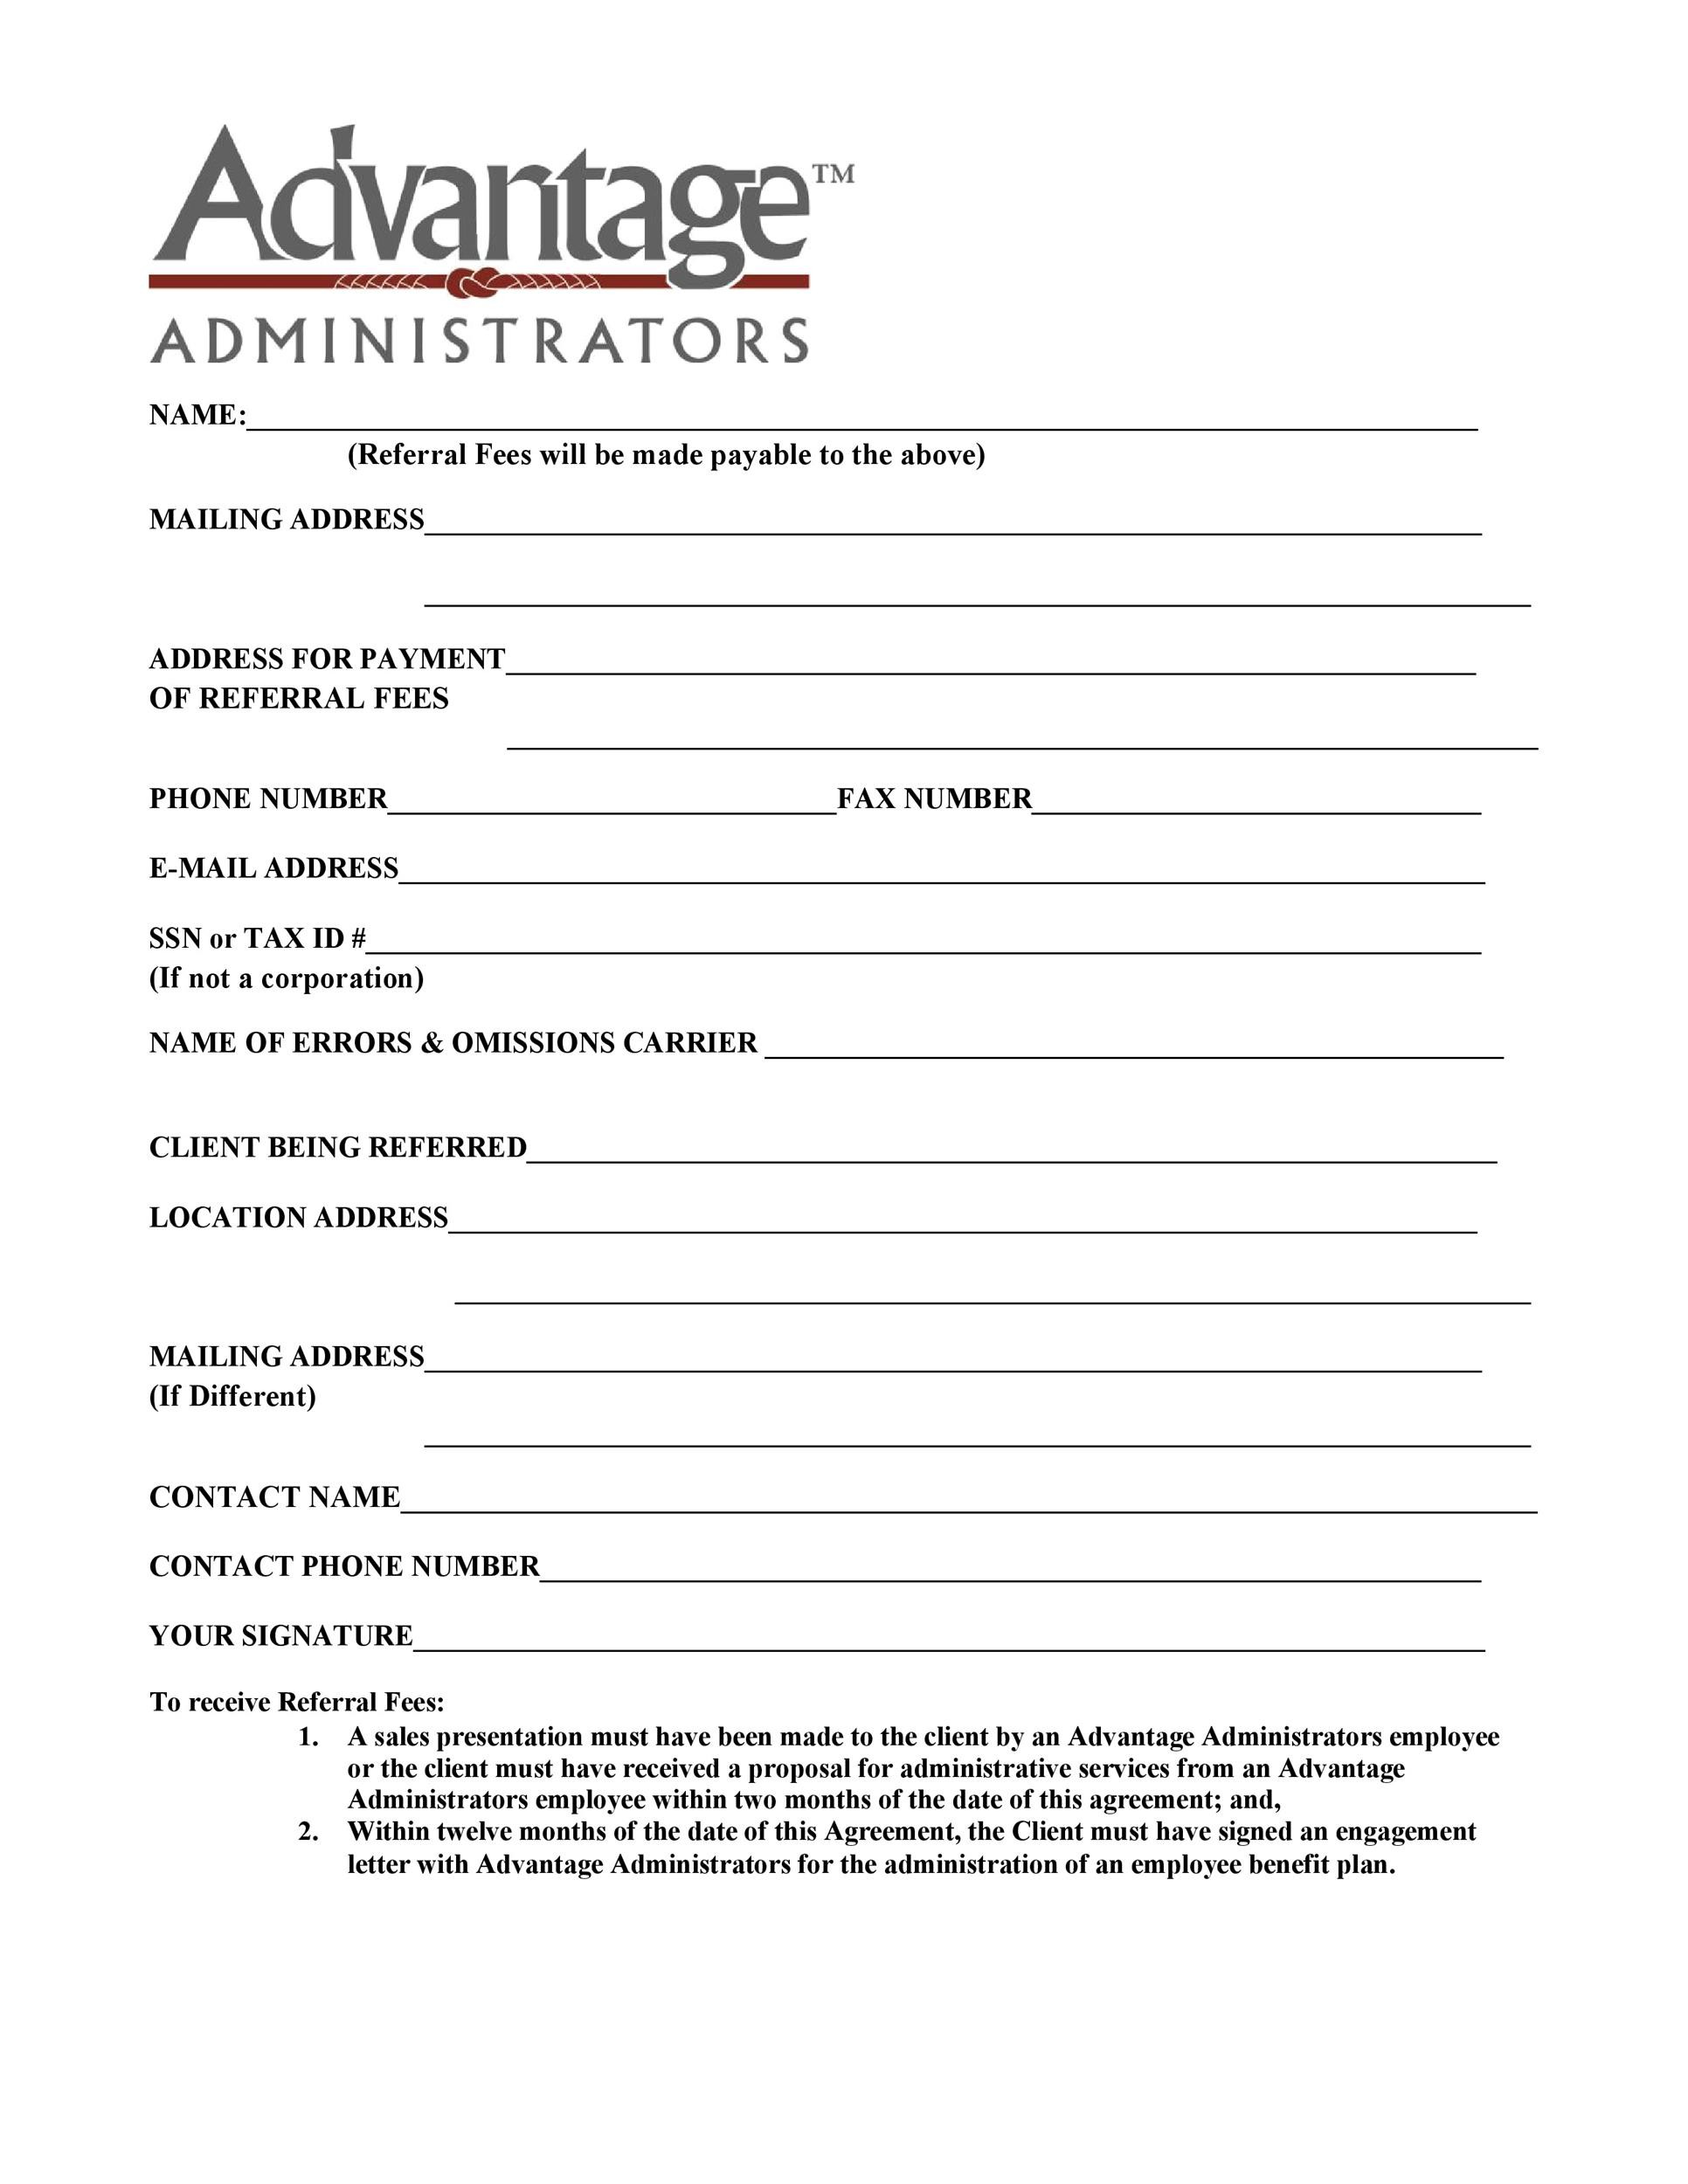 Free referral agreement template 19